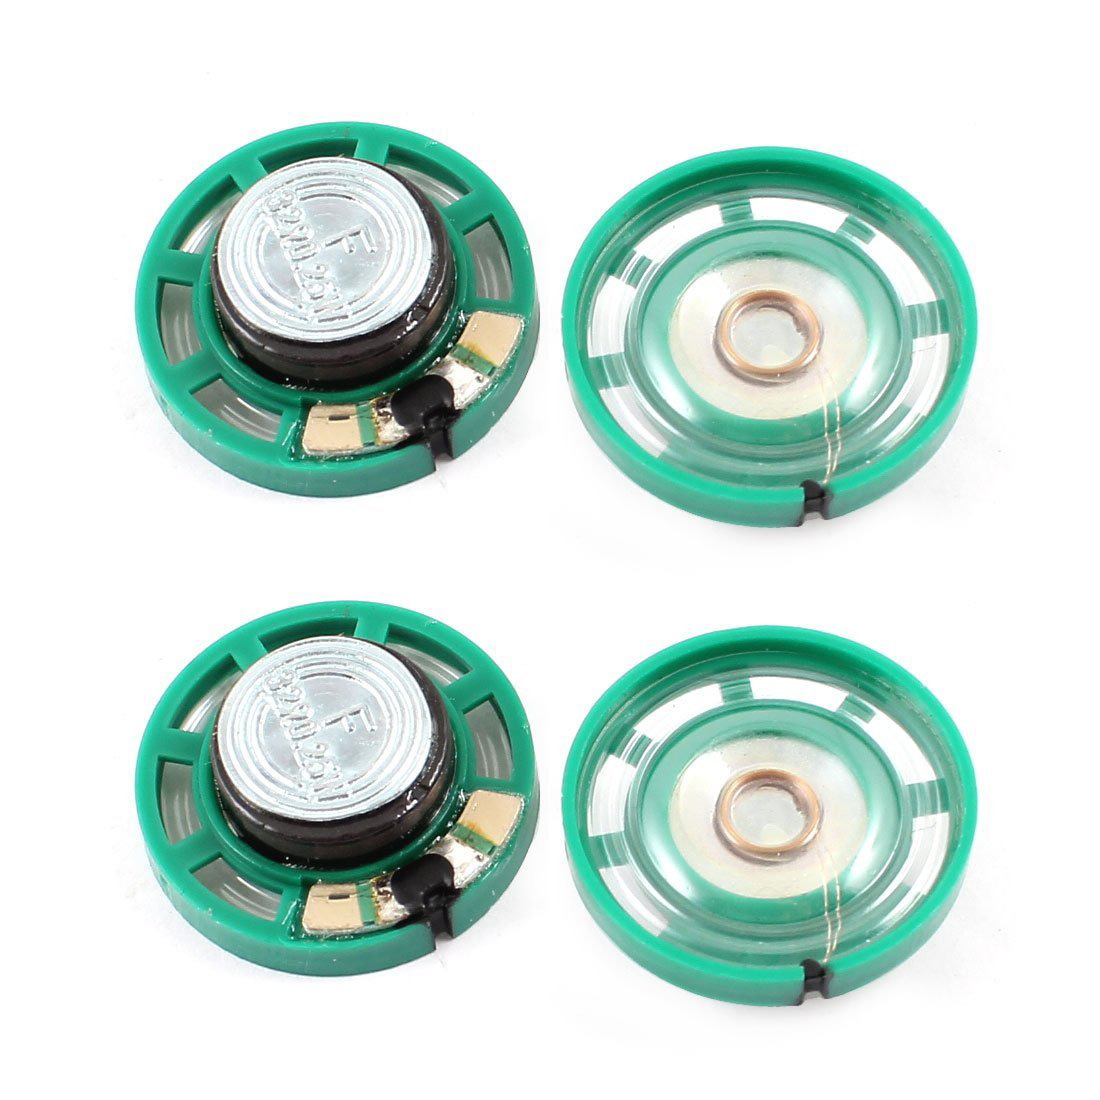 0.25 W 32 Ohm Plastic 4 Magnetic Speaker With 27 Mm Diameter Green + Silver